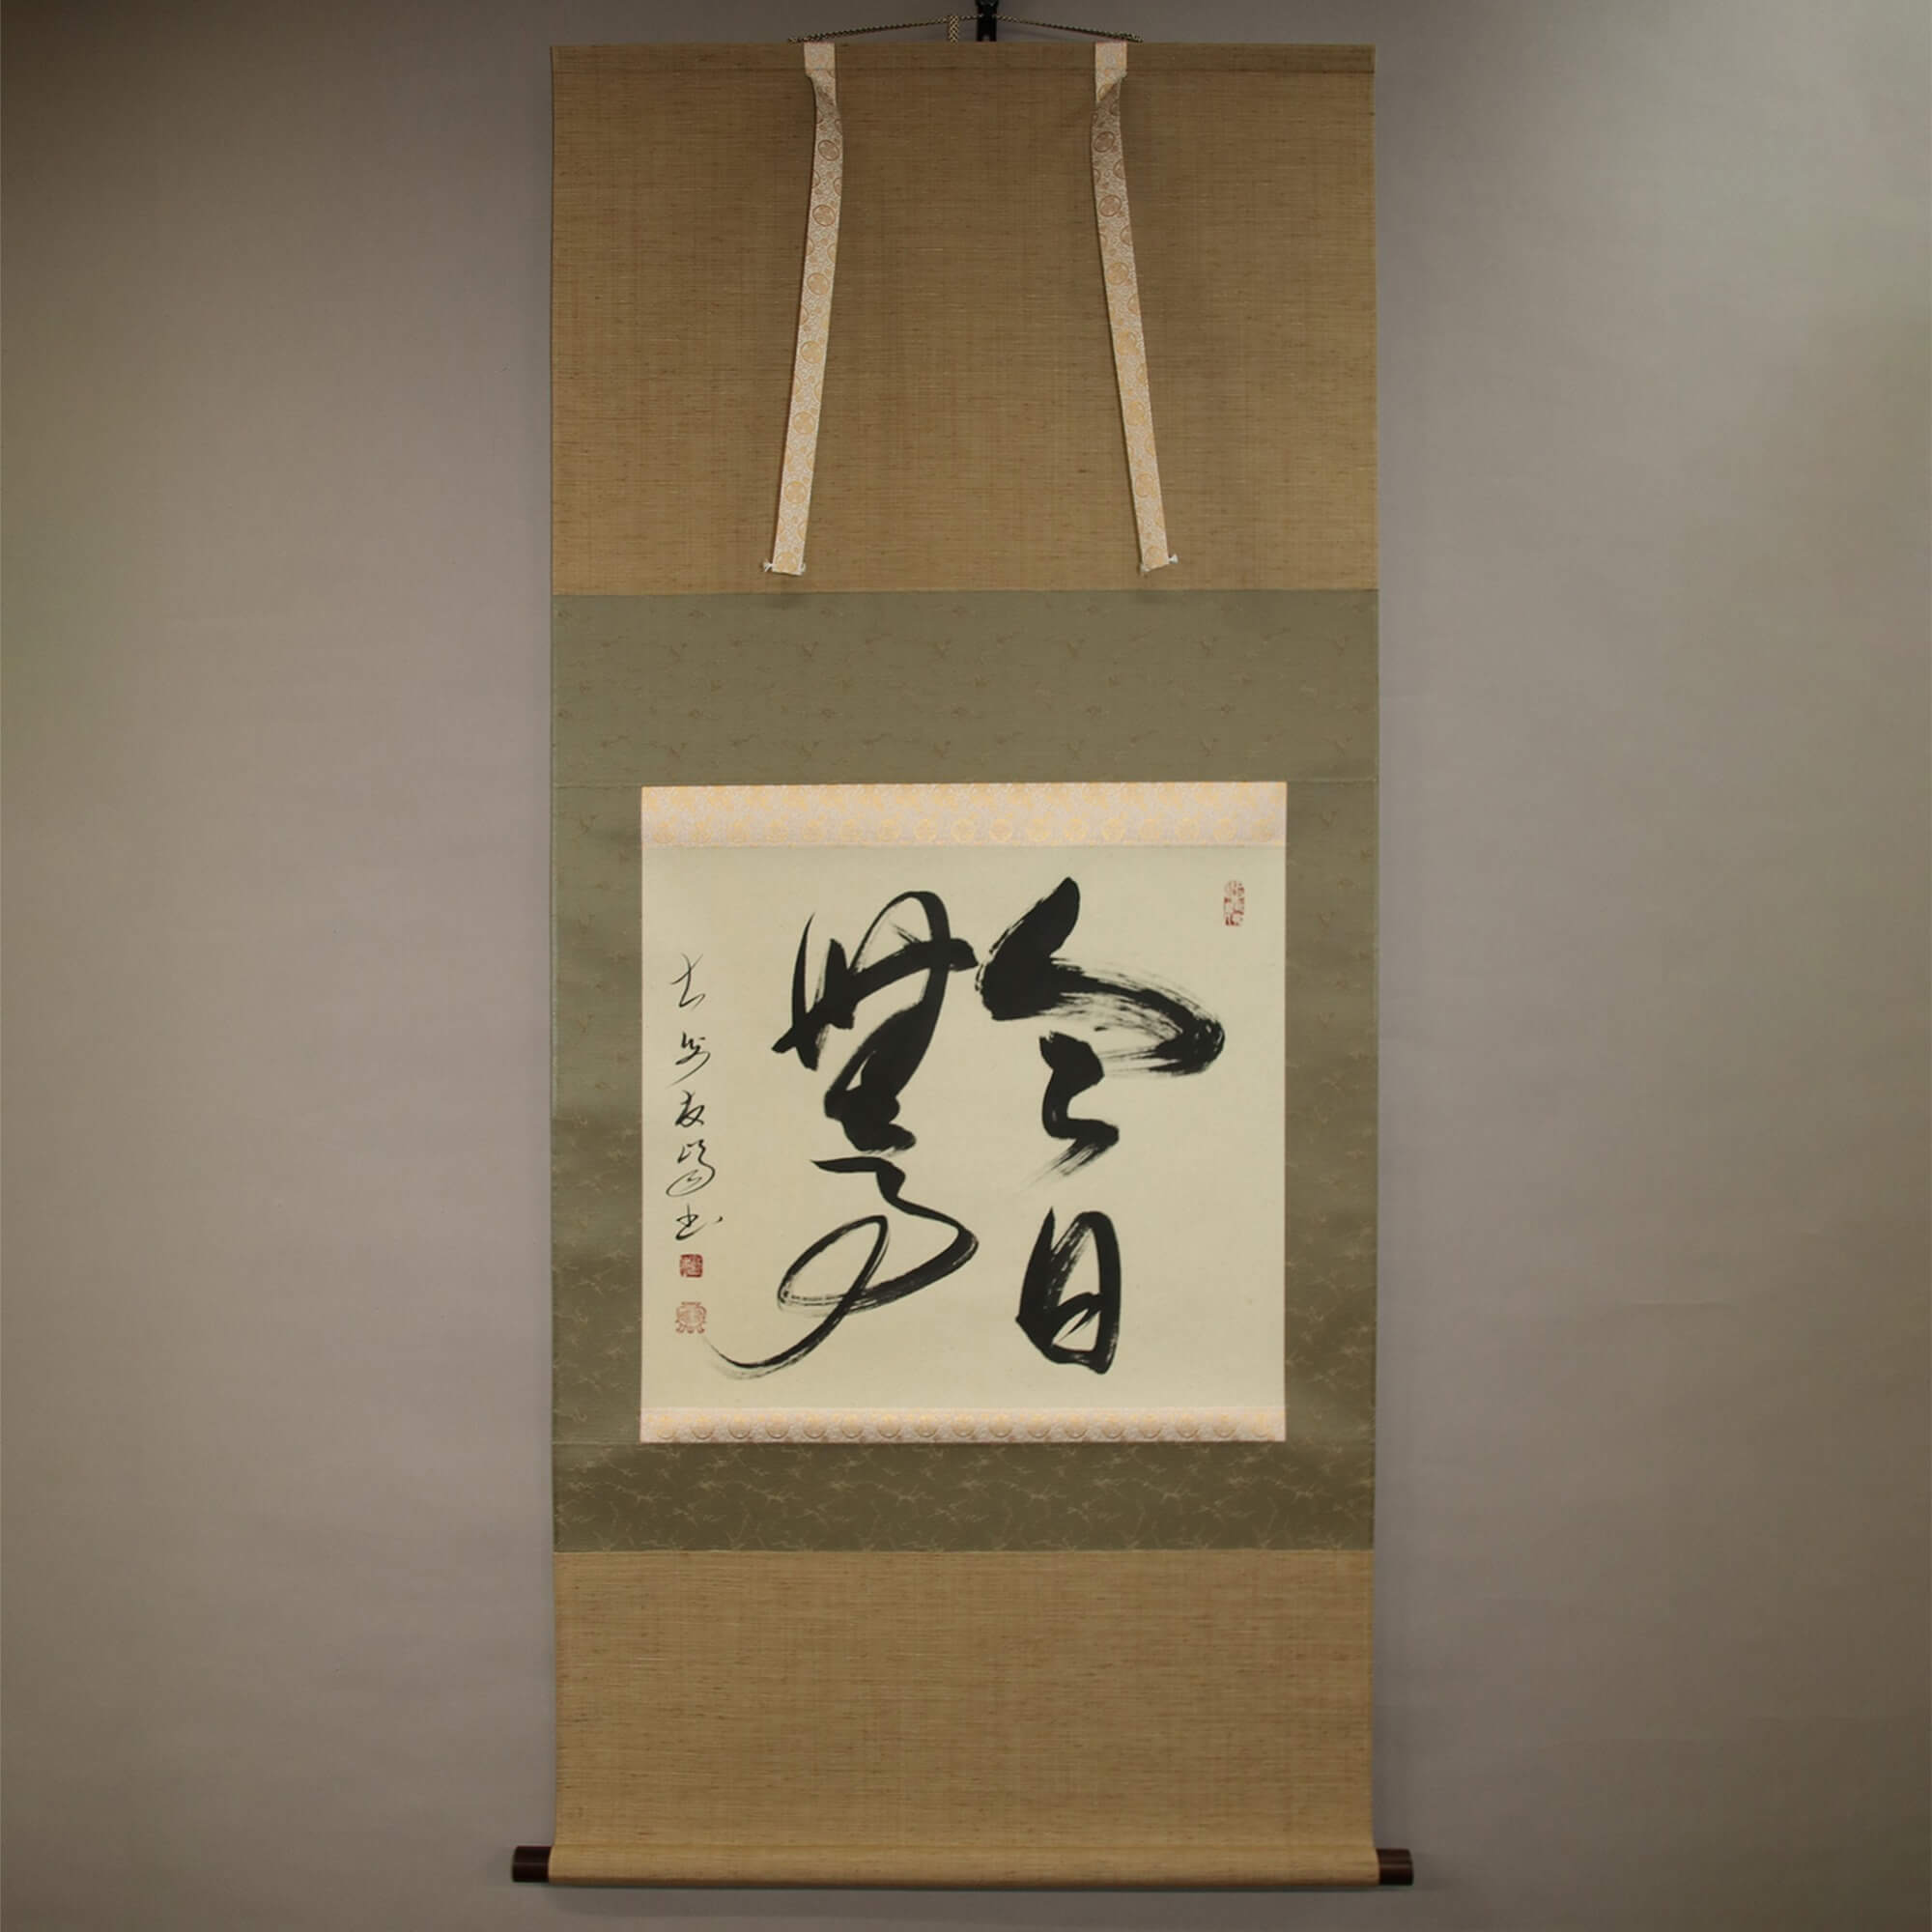 Calligraphy : Today Is Peace and Tranquility with Nothing to Be Done / Takahashi Yūhō